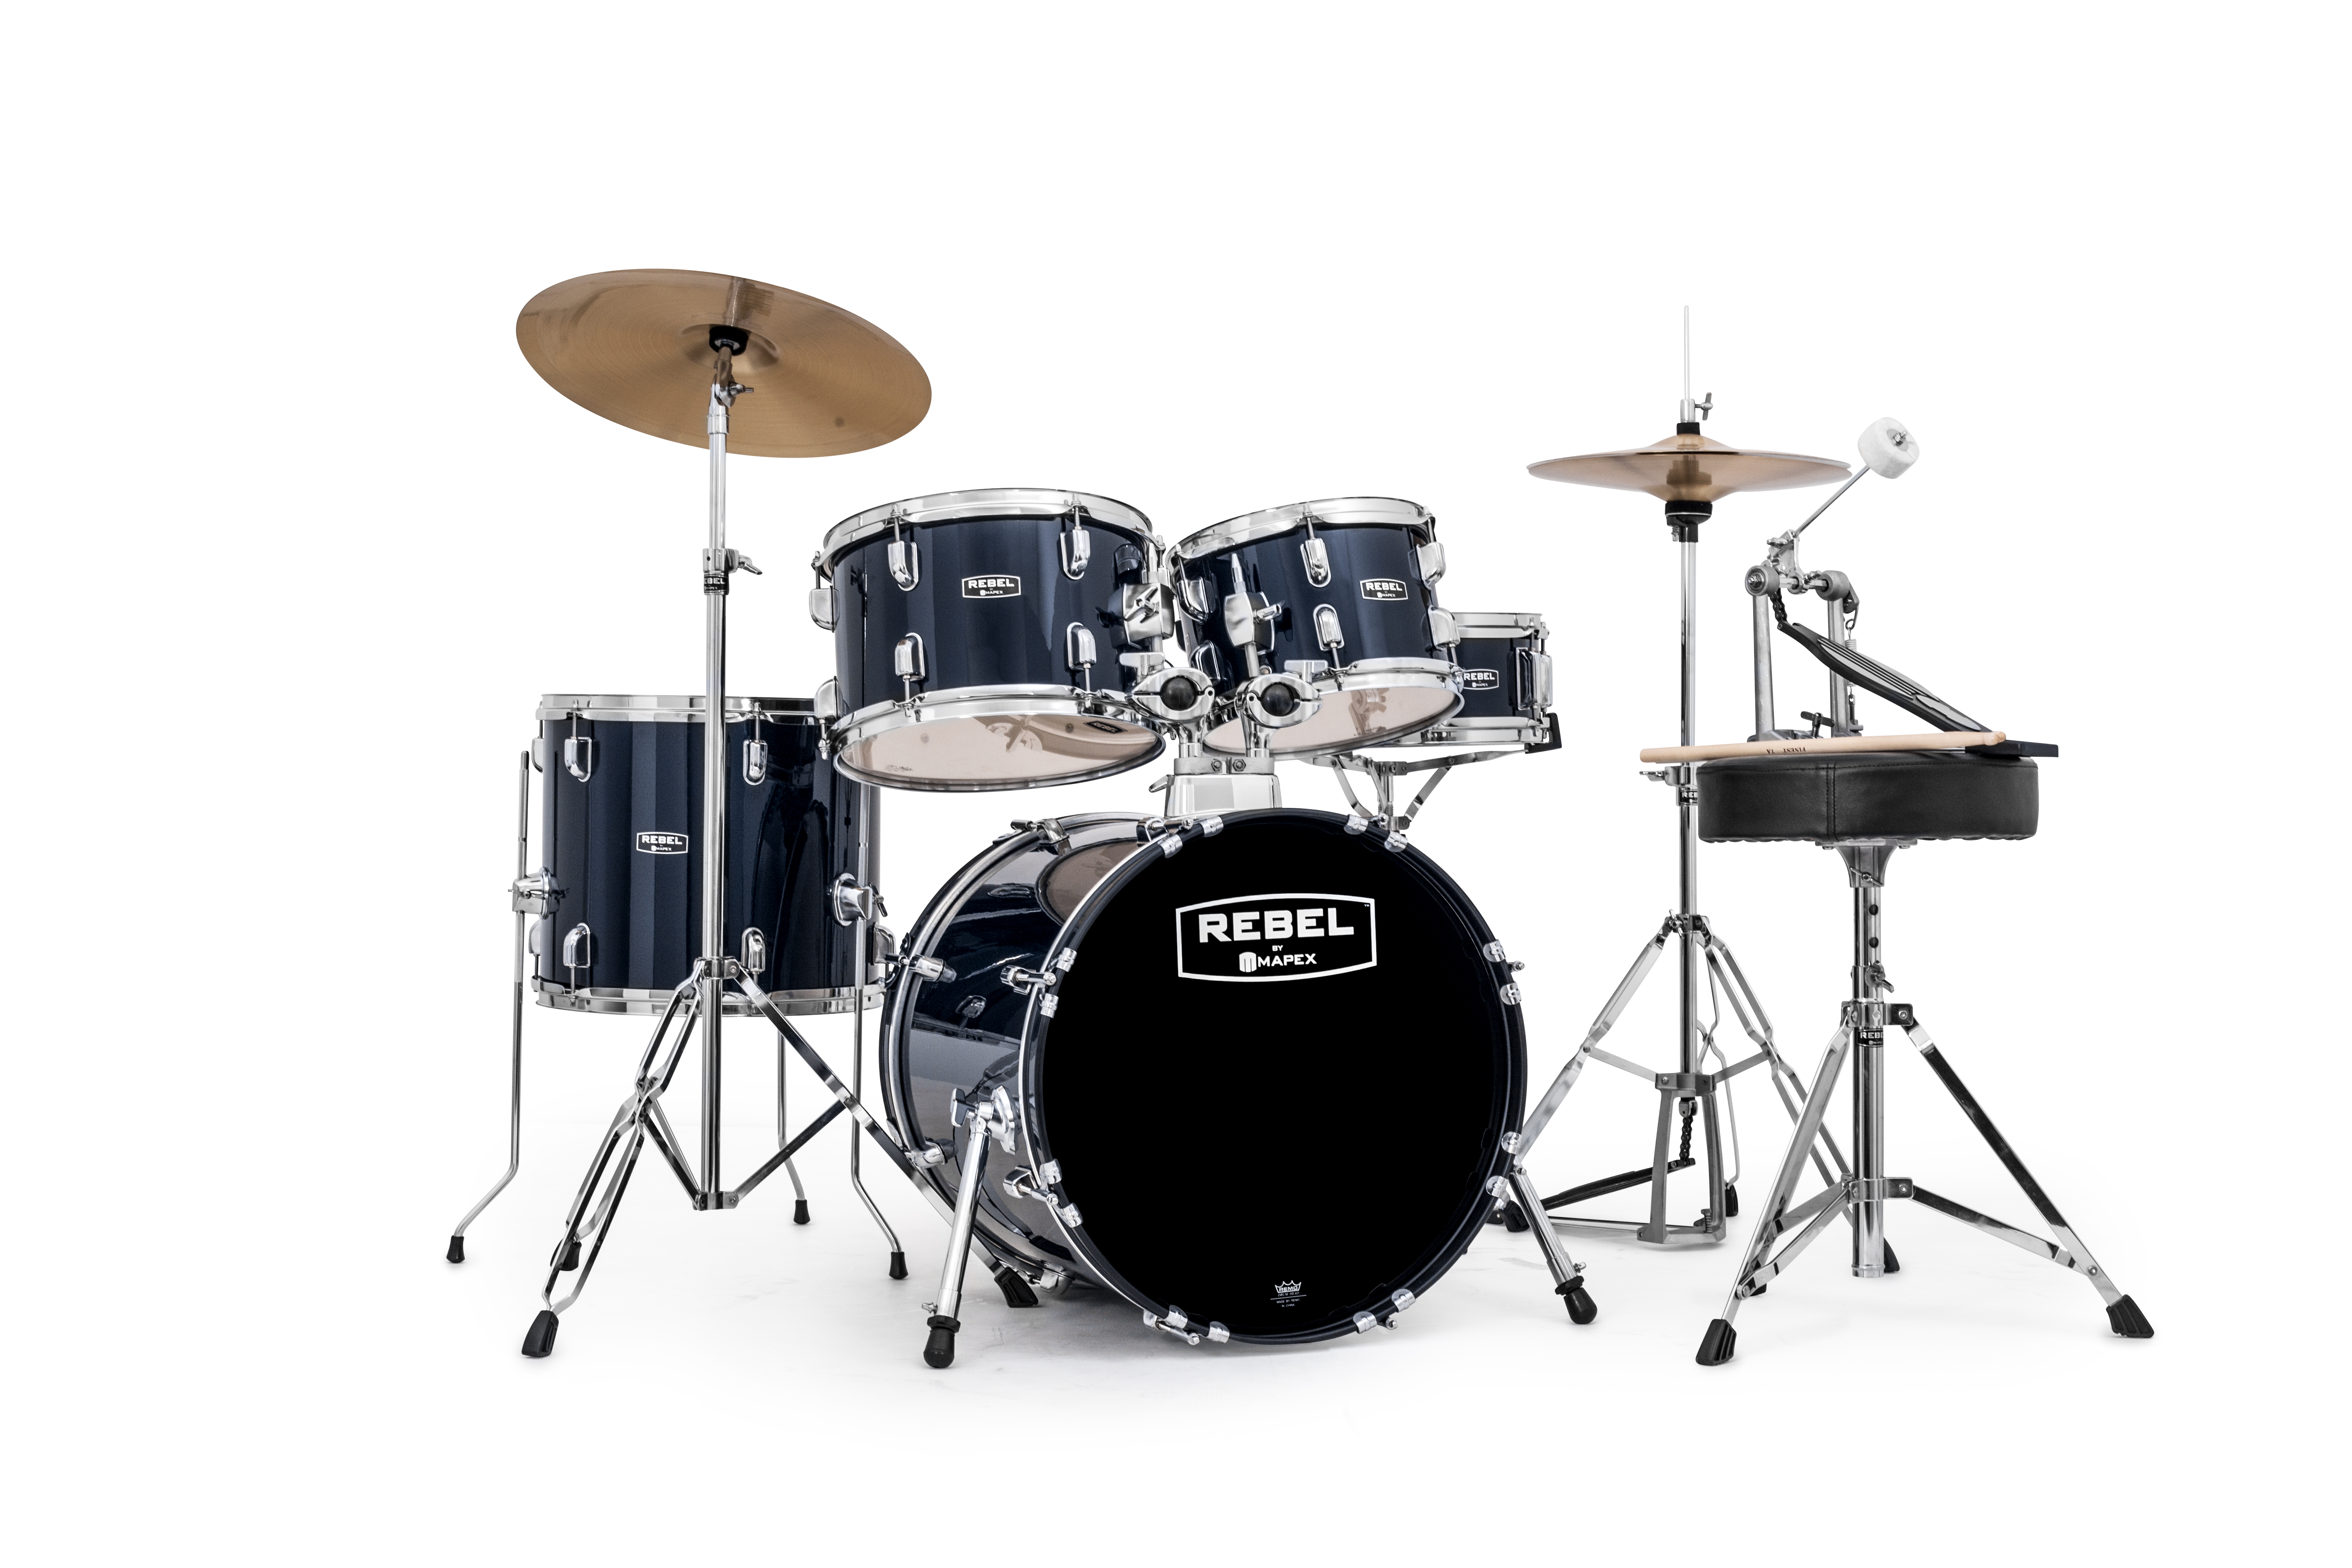 Mapex Rebel 5-piece Complete Junior Set Up with Fast Size Toms - RB5844FTCYB - Royal Blue